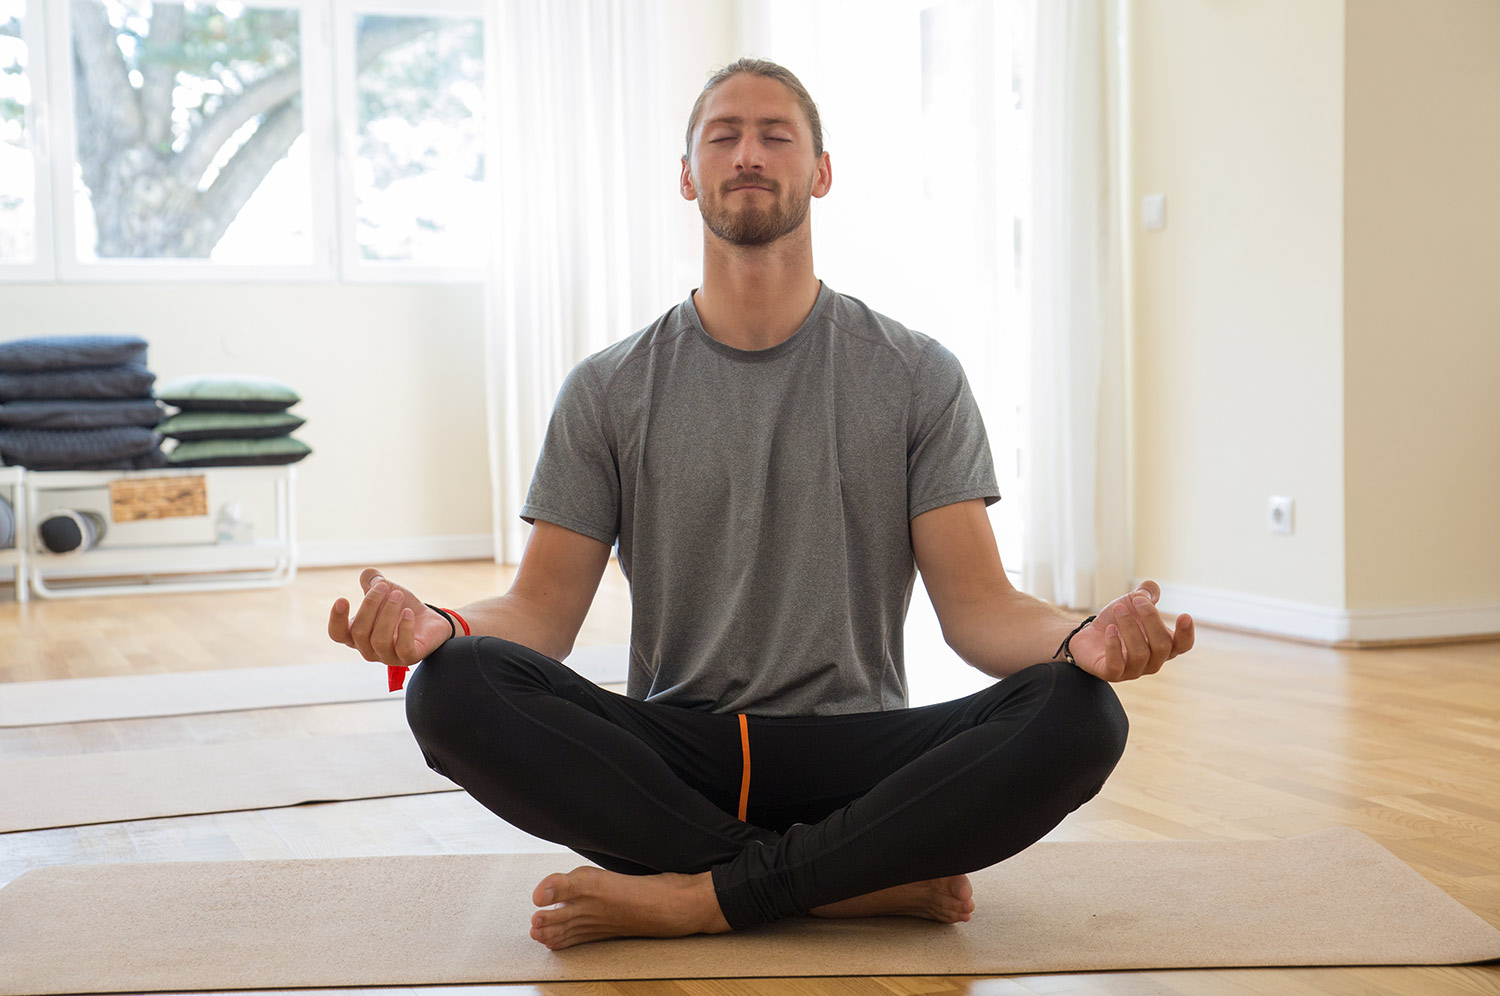 Yoga Helps ReduceSymptoms Of Prostate Cancer